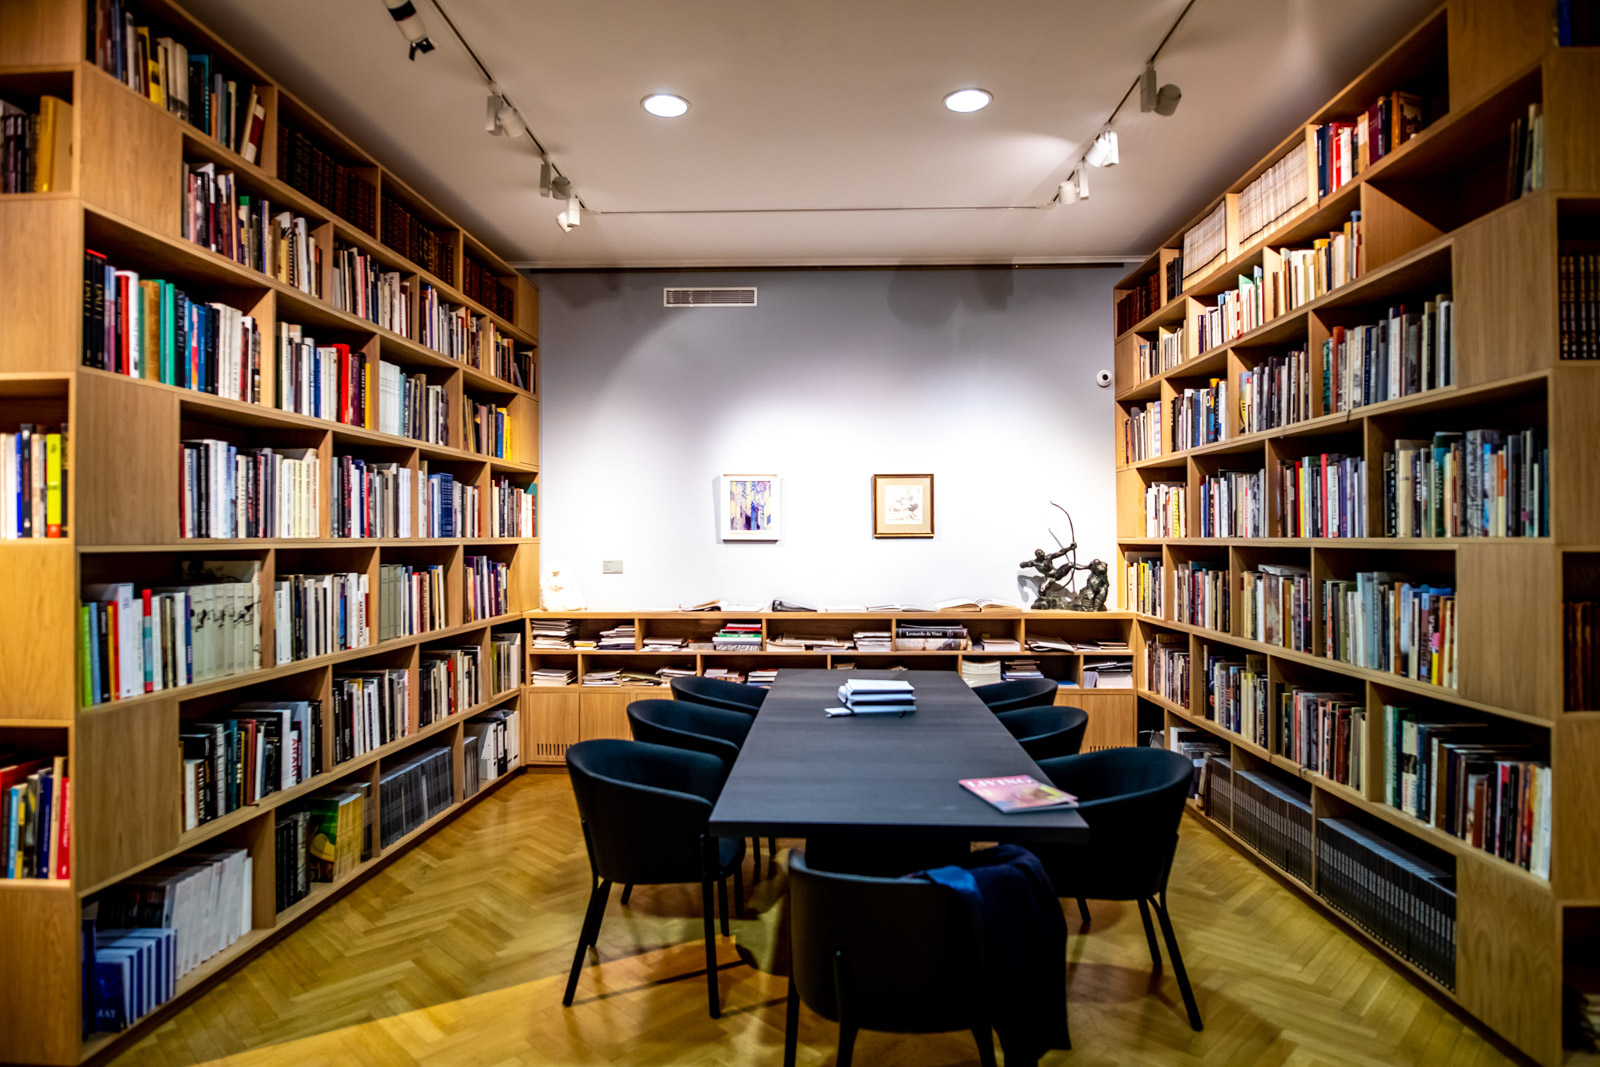 Library of the Cermak Eisenkraft gallery